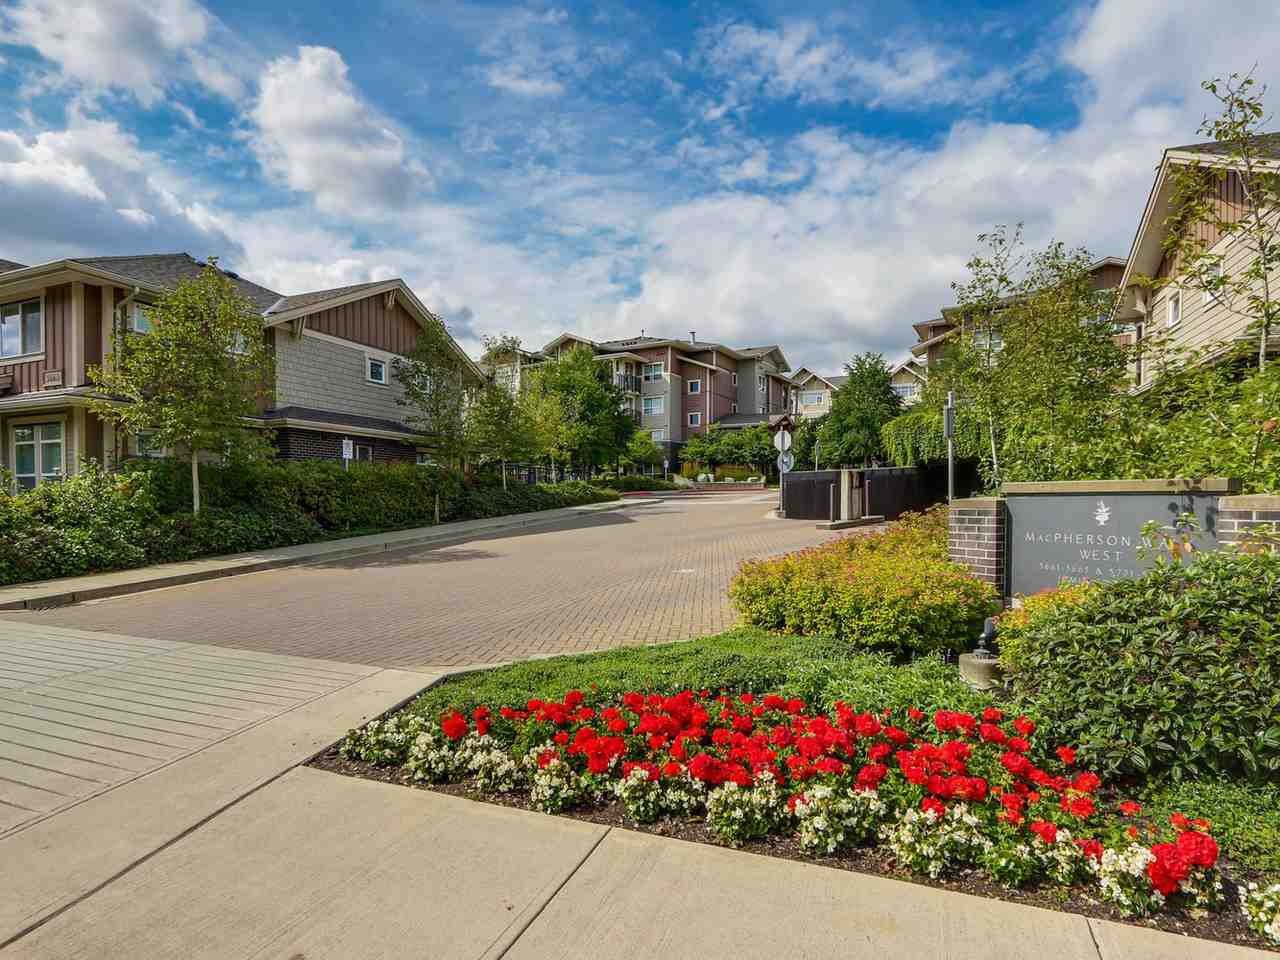 """Main Photo: 402 5665 IRMIN Street in Burnaby: Metrotown Condo for sale in """"MACOHERSON WEST"""" (Burnaby South)  : MLS®# R2089049"""